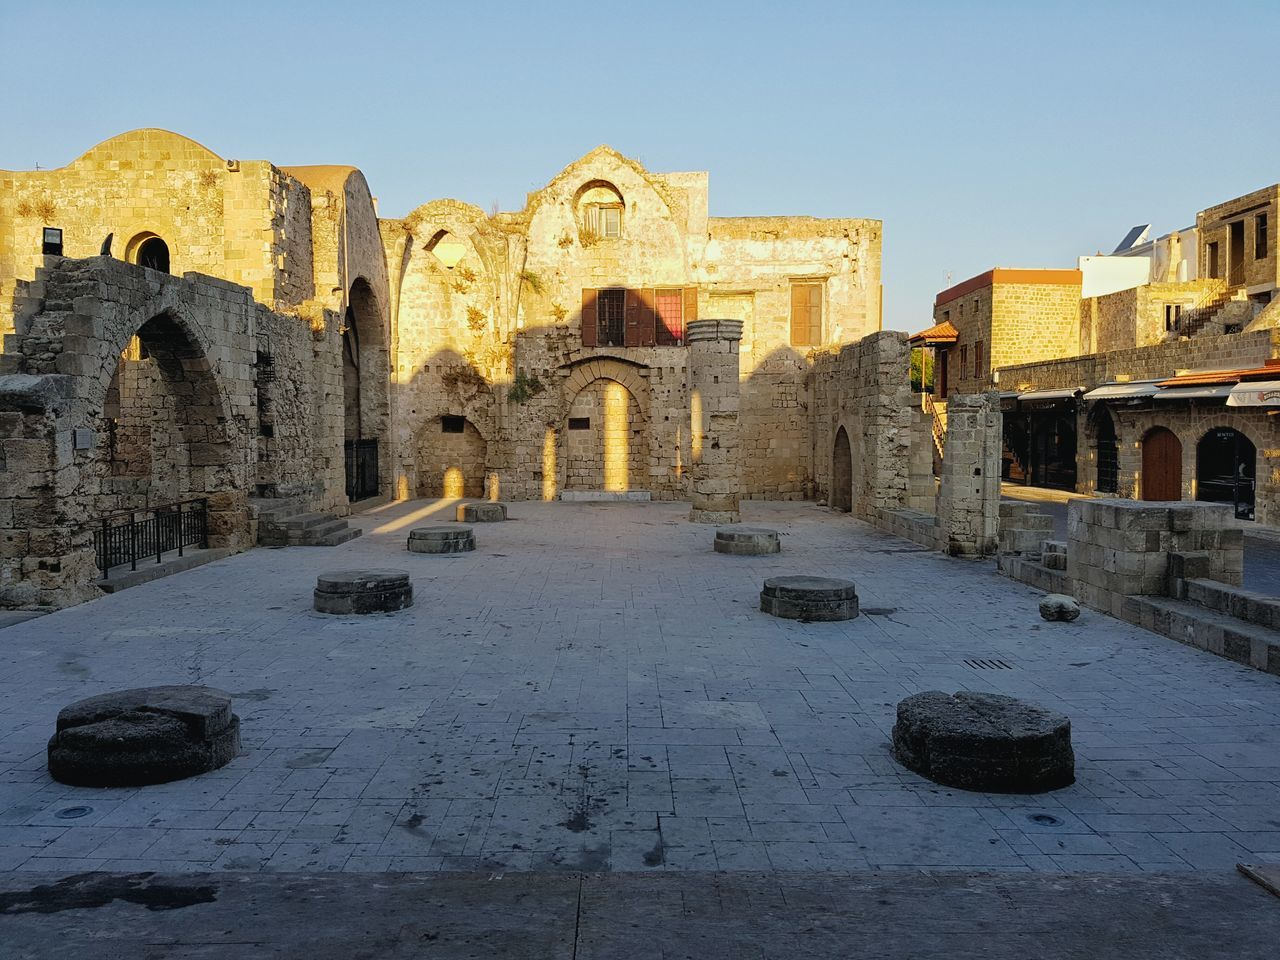 Morning Light Middle Ages Castle Old City Rhodos Rhodes Greece Rhodos Fine Art Photography Blue Sky Idyllic Scenery Church Church Ruin Rhodos, Greece  No People The City Light